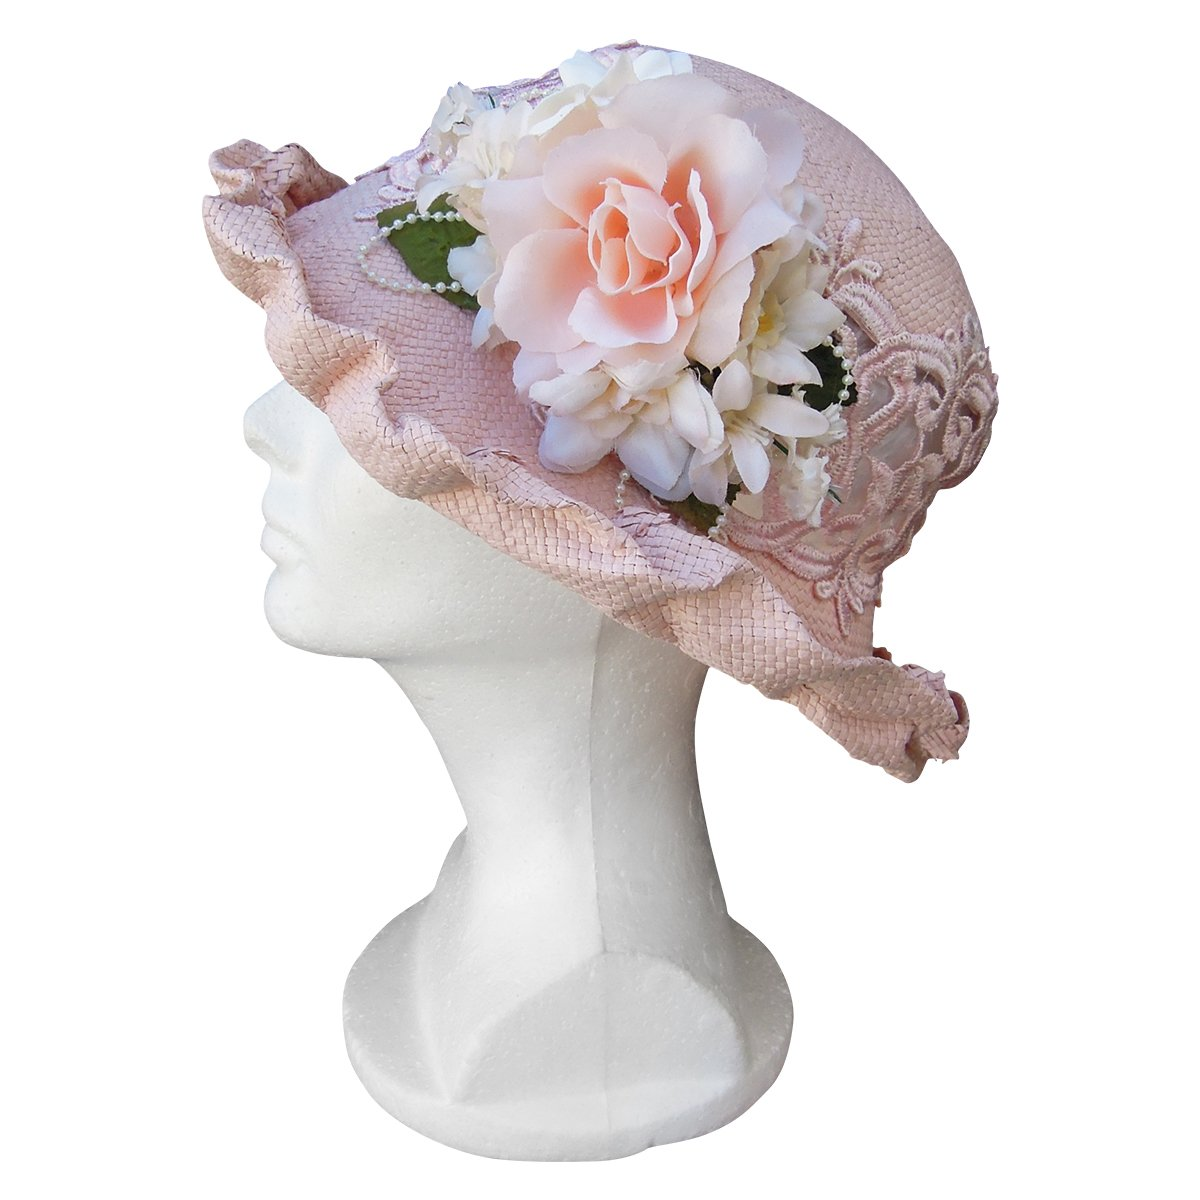 8 Easy 1920s Costumes You Can Make  Lace Straw Cutaway Hat Narrow Brim Ladies Cloche Church $45.00 AT vintagedancer.com